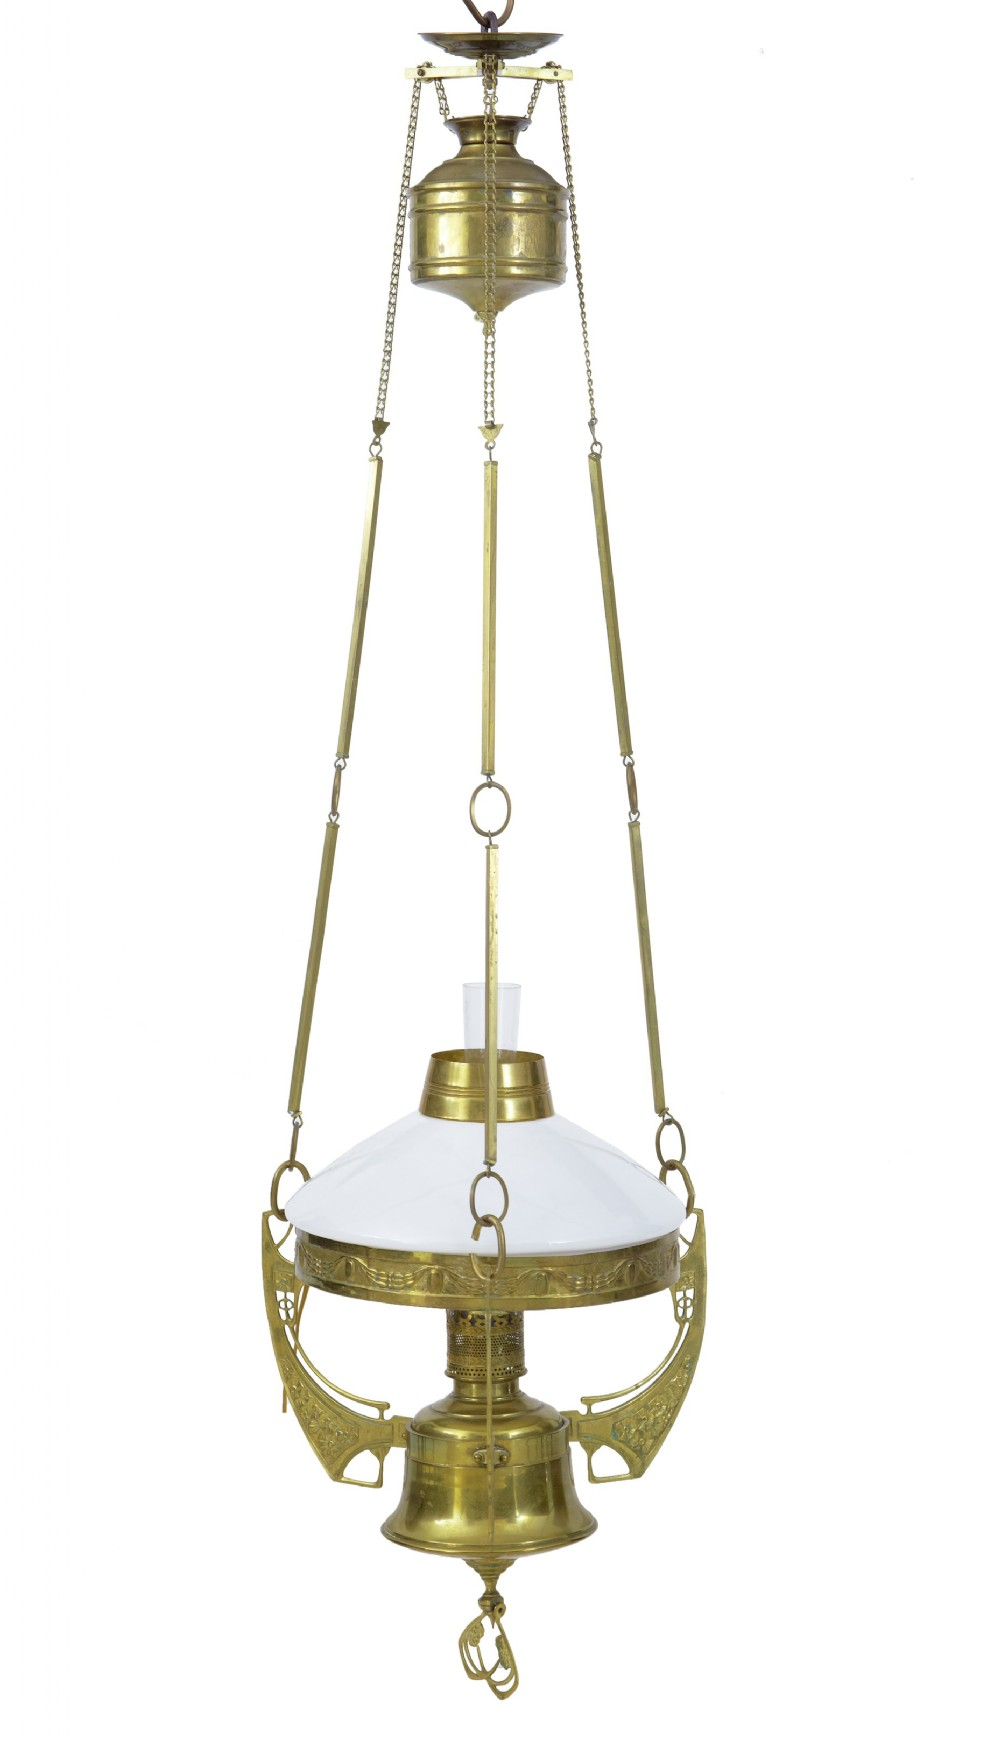 late 19th century arts and crafts brass adjustable hanging lamp